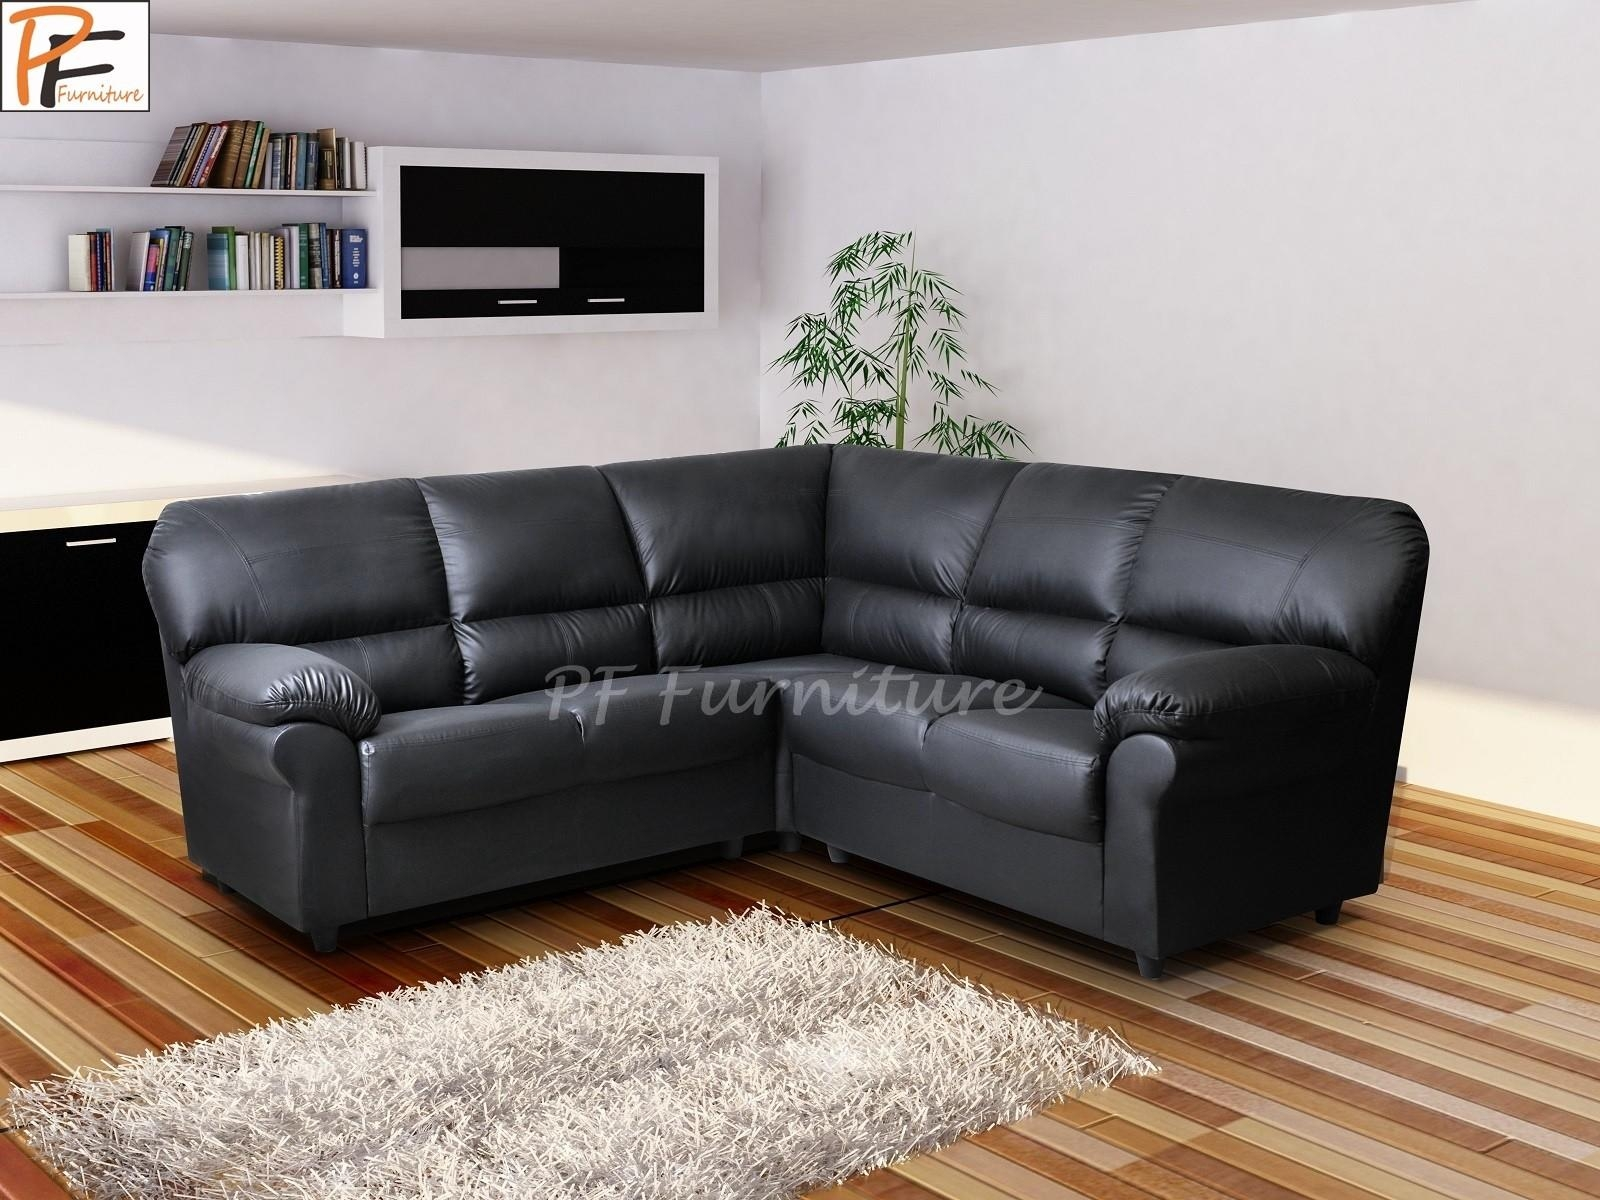 Contemporary Leather Sofas Corner And Design Inspiration With Regard To Corner Sofa Bed Sale (Image 5 of 20)